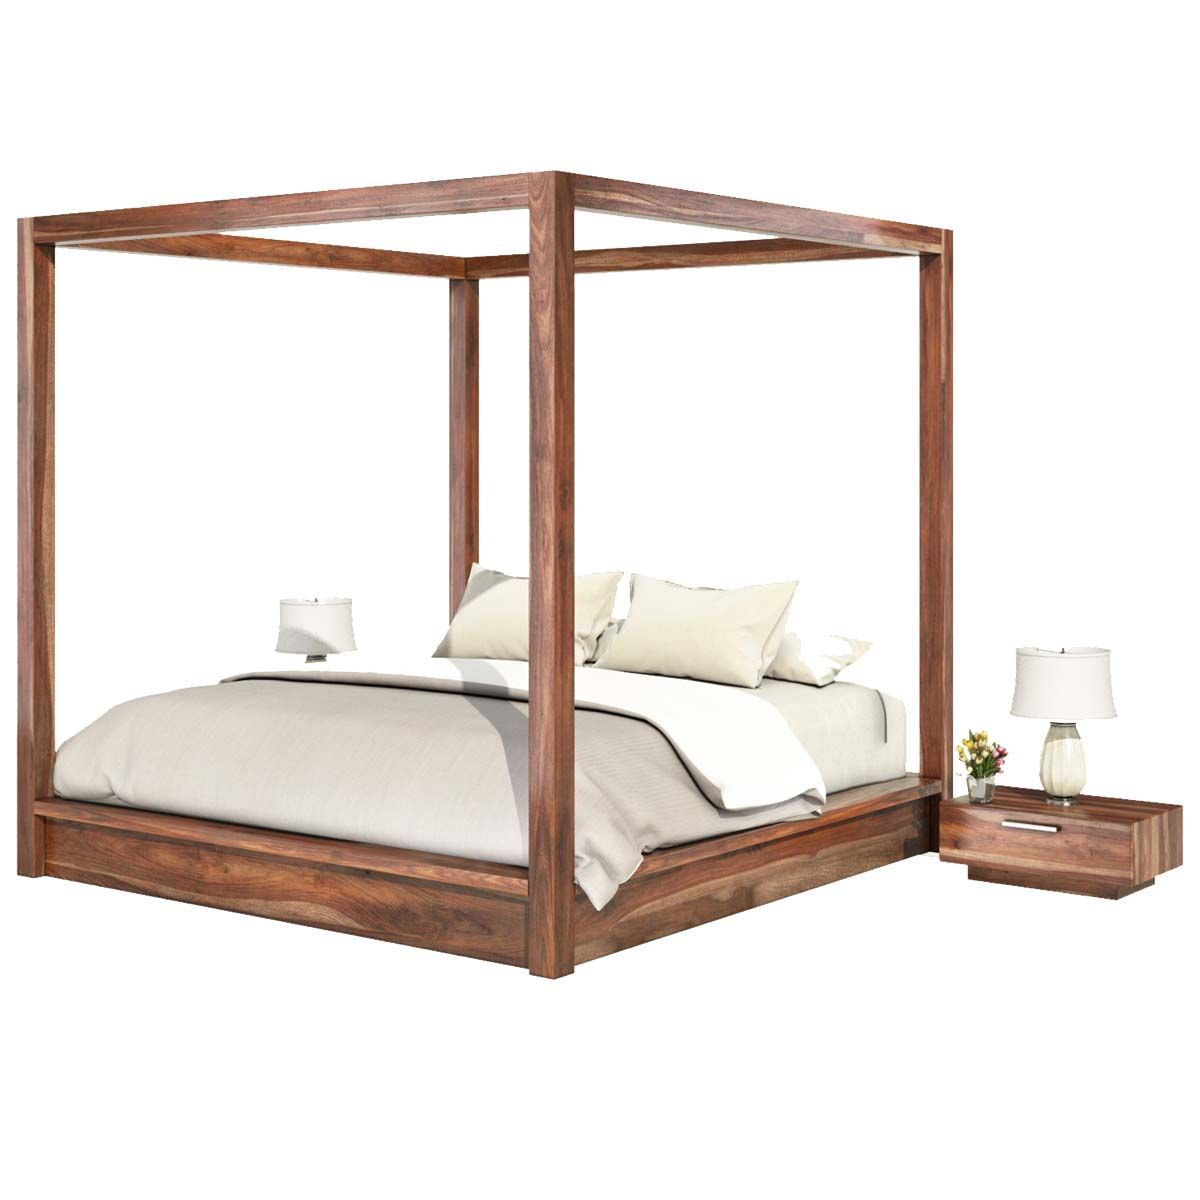 Hampshire Rustic Solid Wood King Size Canopy Bed Canopyideaswindowtreatments Canopy Bed Frame Wood Canopy Bed Platform Canopy Bed